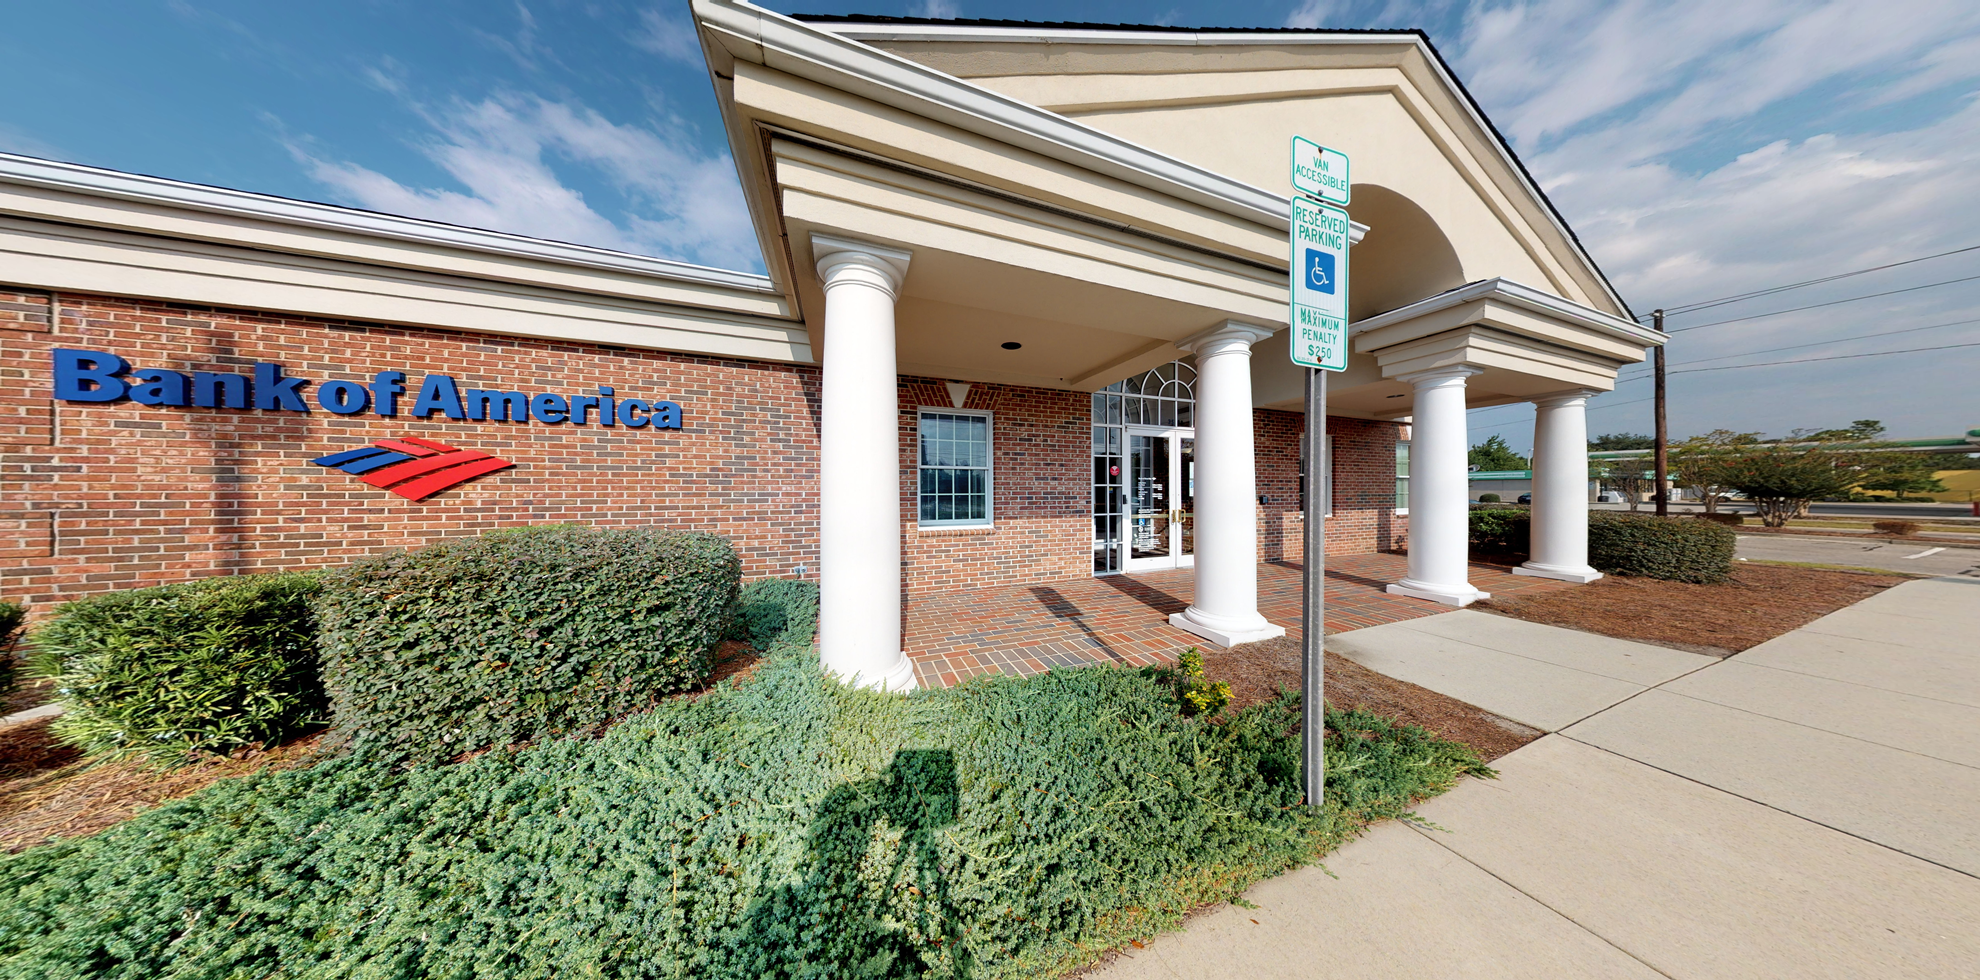 Bank of America financial center with drive-thru ATM   3500 S College Rd, Wilmington, NC 28412